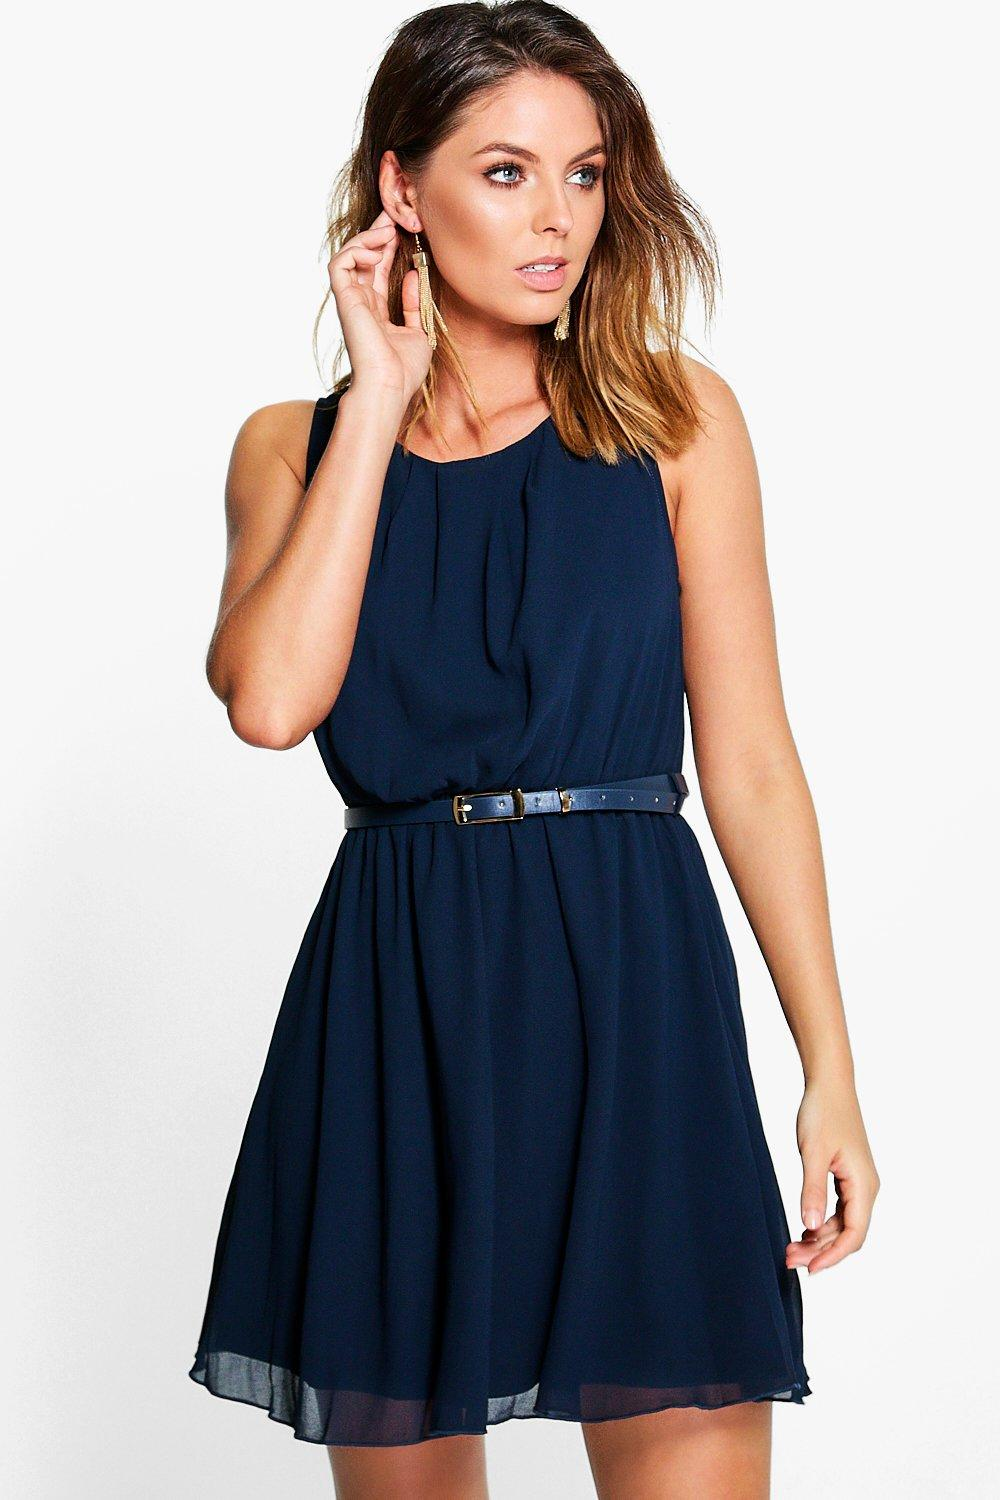 Frankie Sleeveless Chiffon Gold Belted Skater Dress